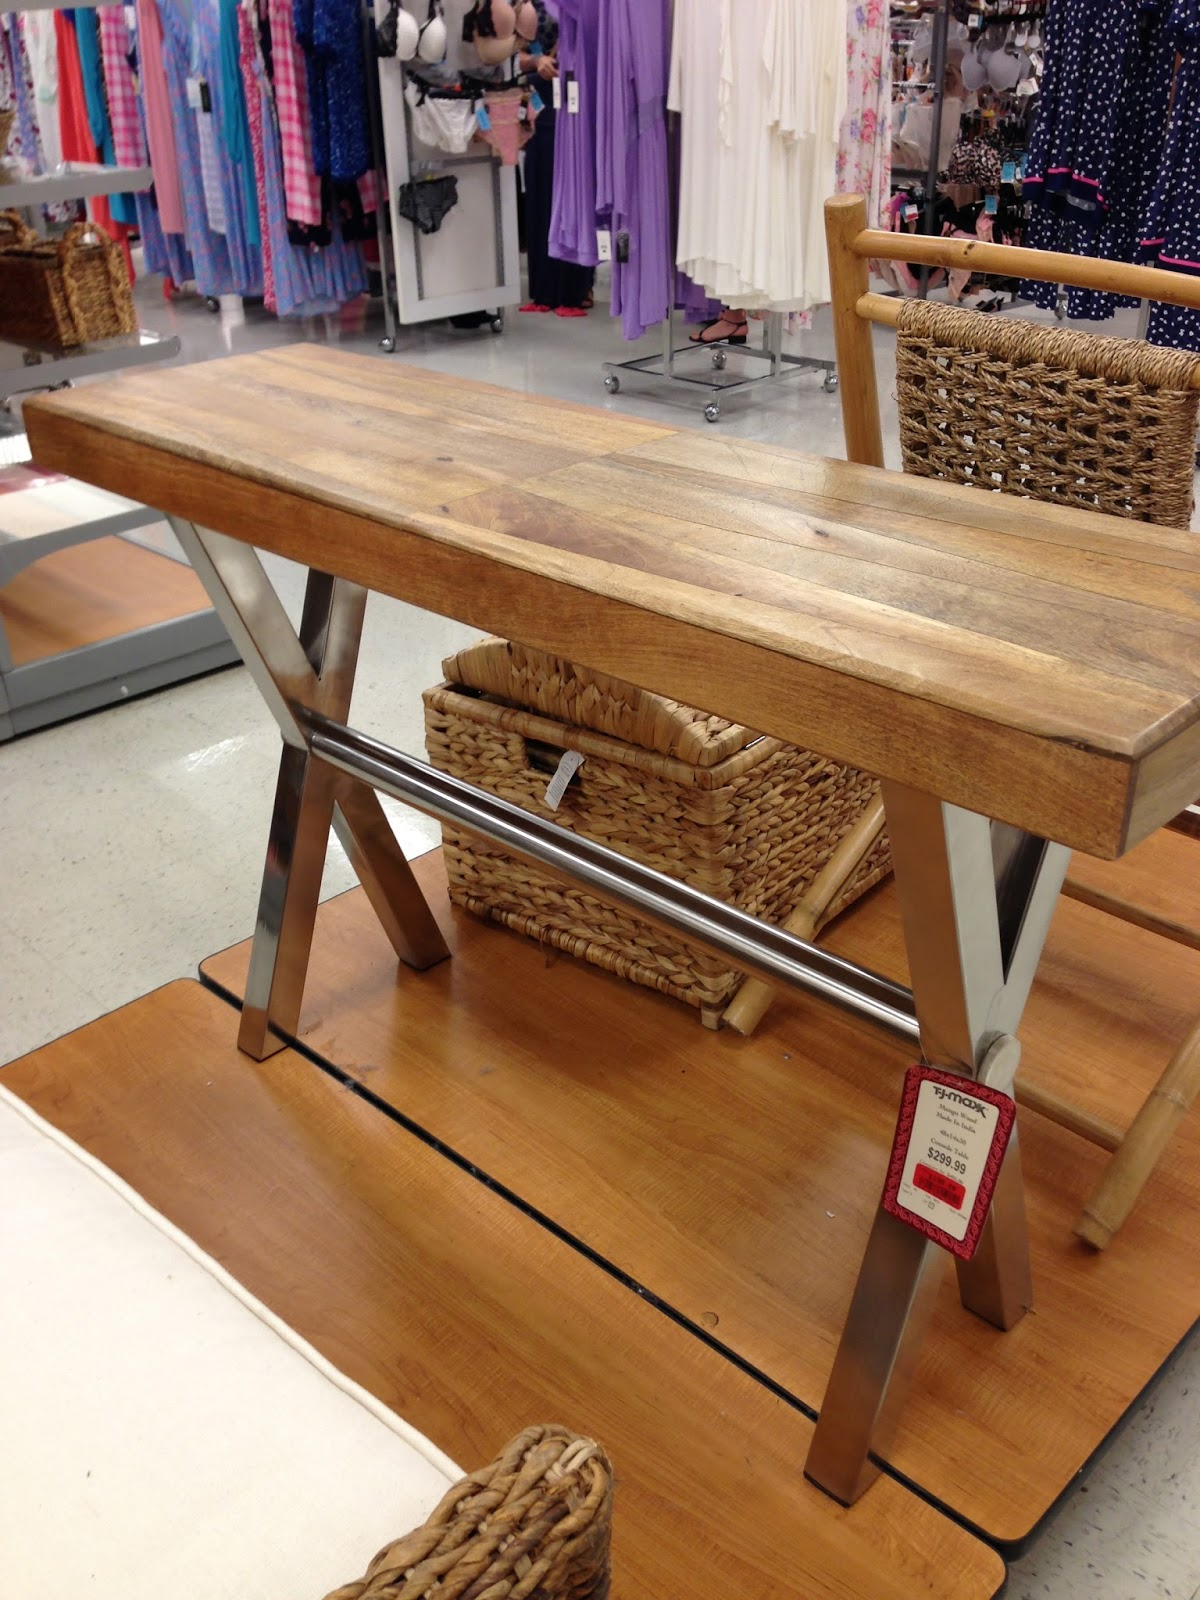 Tj maxx console table images coffee table design ideas tj maxx console table jobs4education found at tj maxx this was one of those things that geotapseo Choice Image